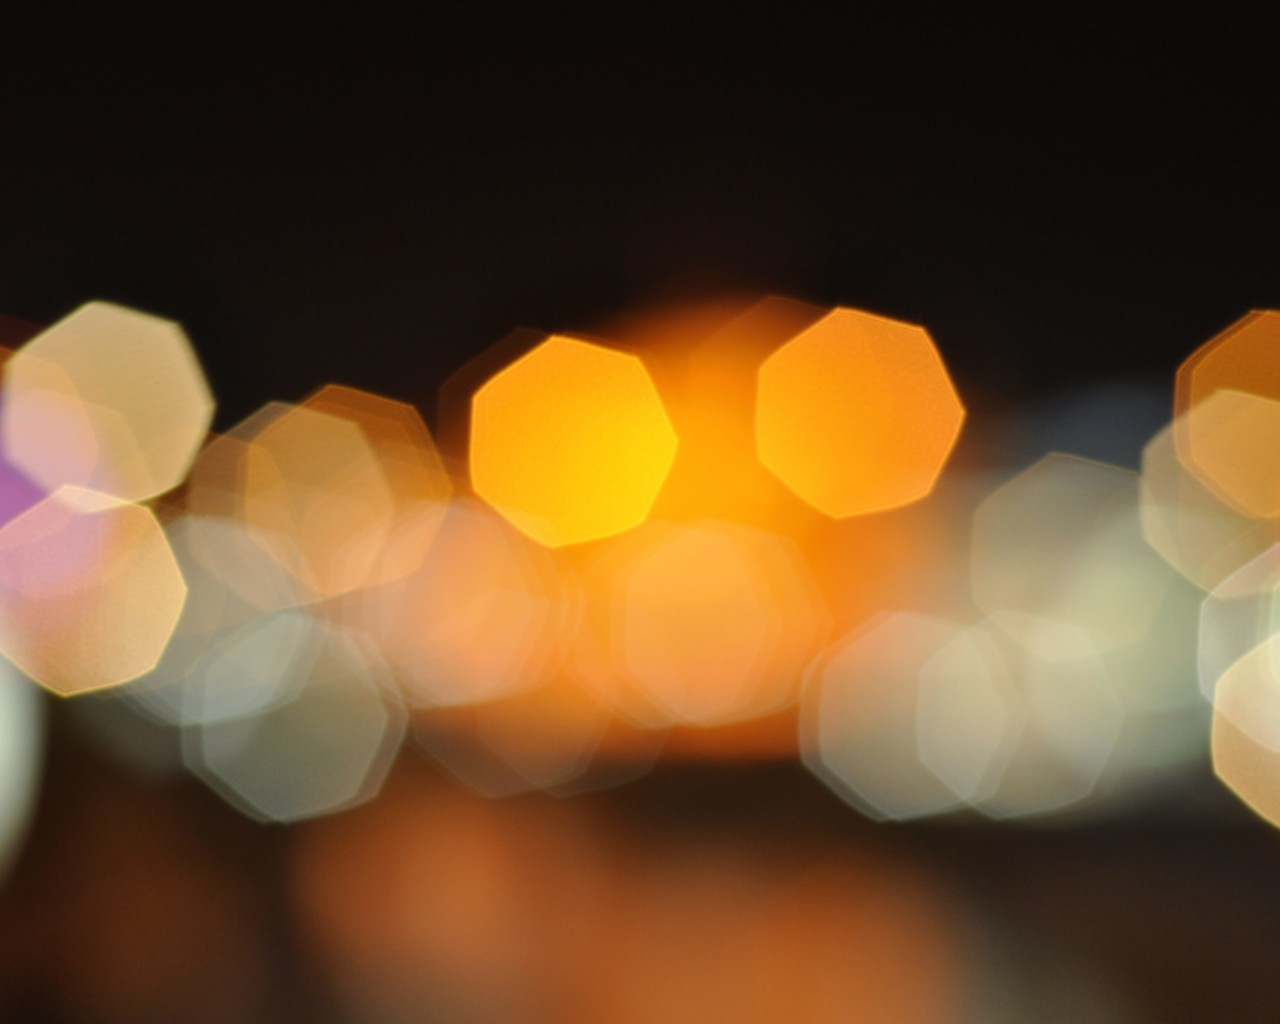 Blurred City Lights Wallpaper for Desktop 1280x1024